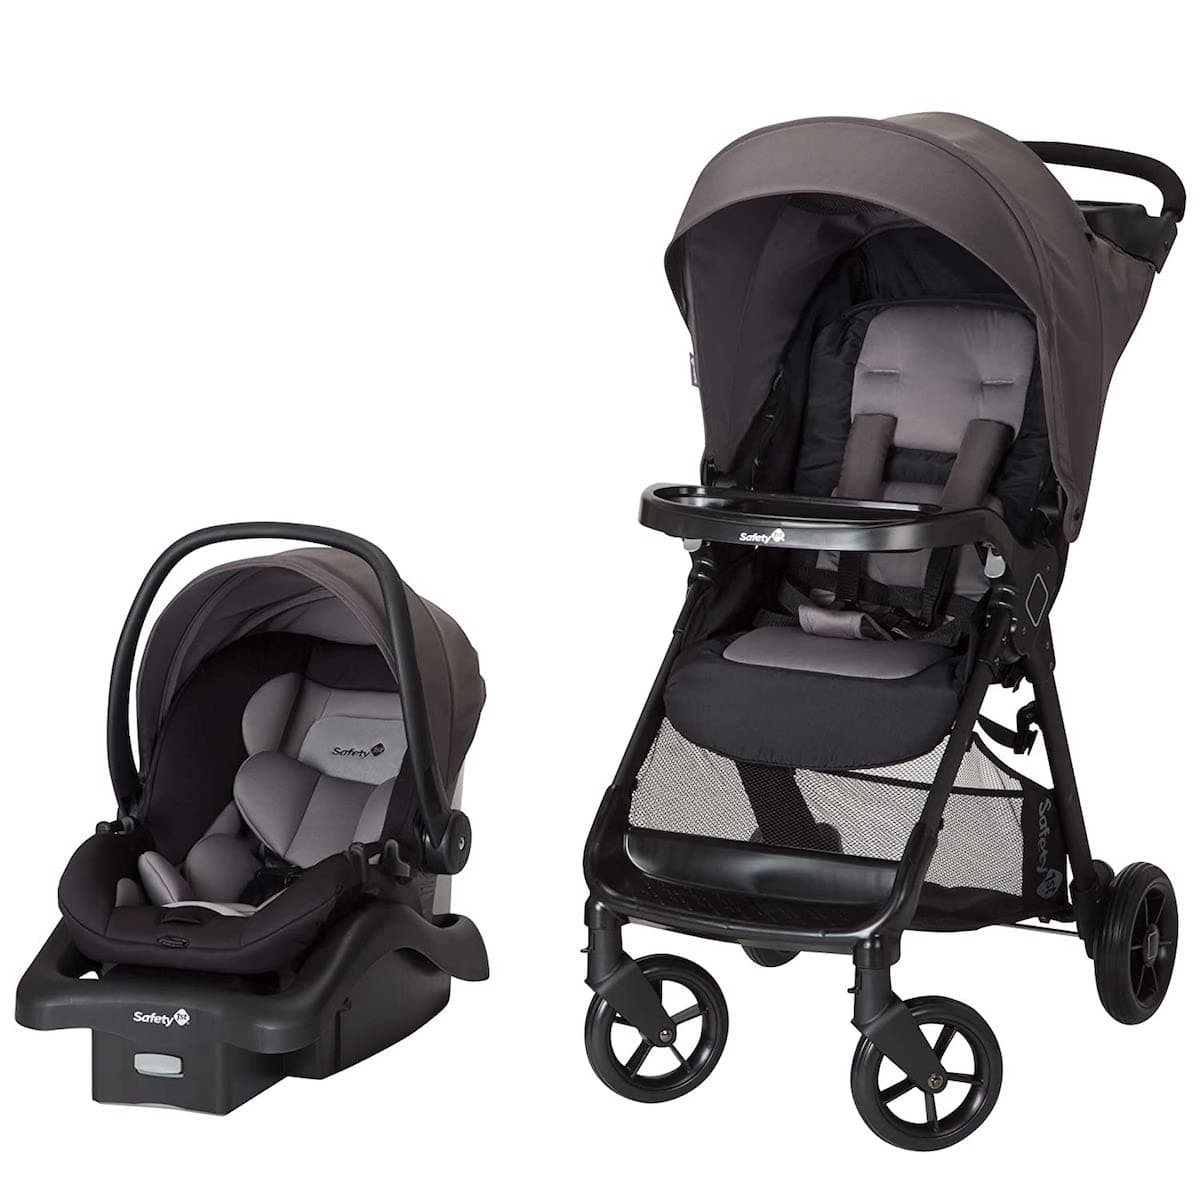 Safety 1st Smooth Ride Travel System Infant Car Seat, Monument